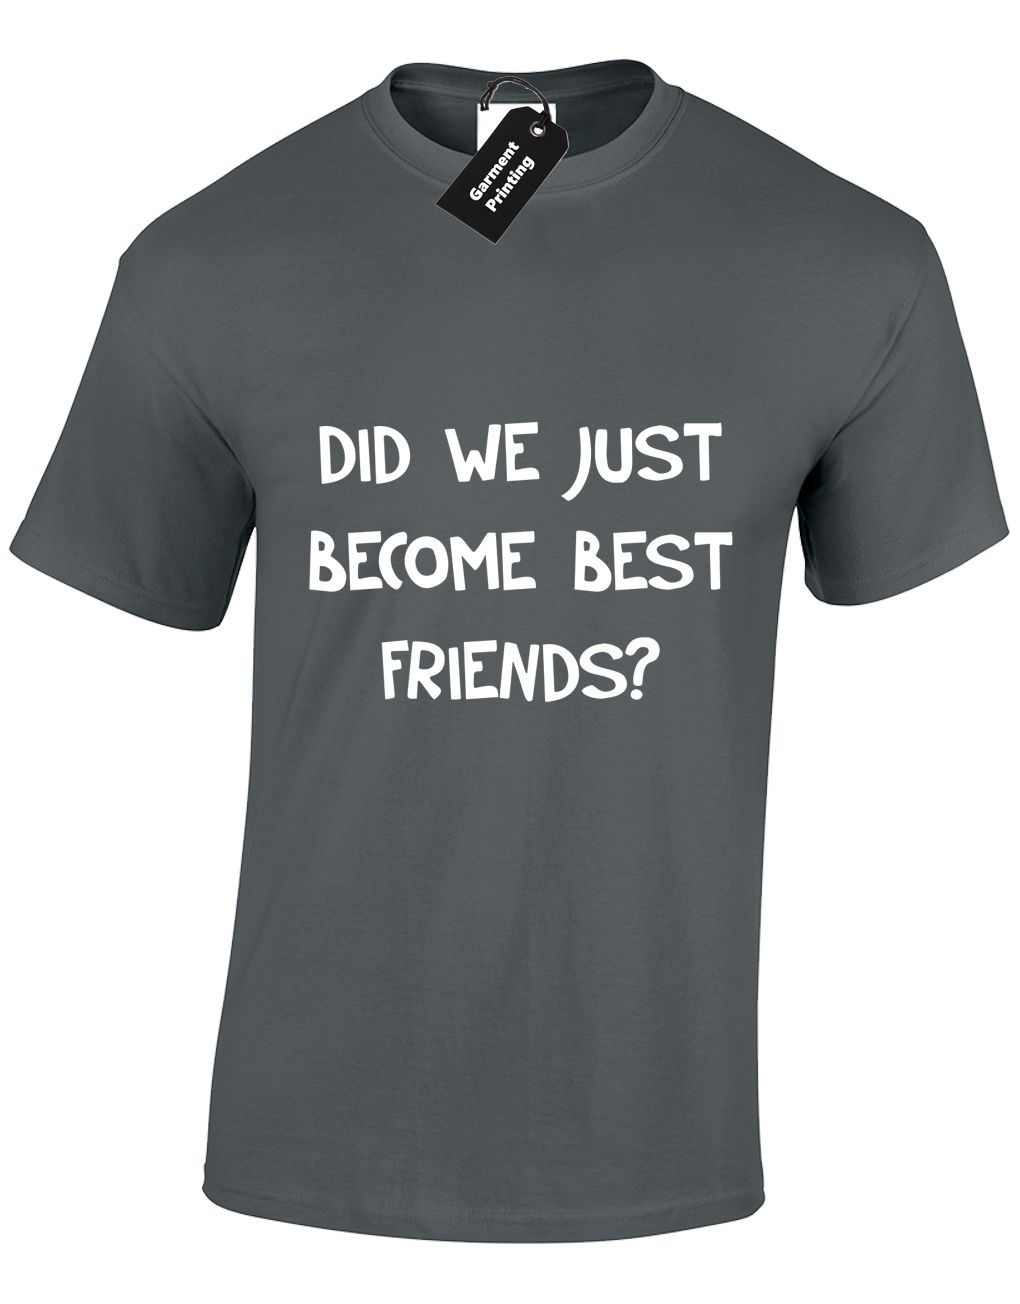 DID WE JUST BECOME BEST FRIENDS MENS T SHIRT TEE AMUSING STEP BROTHERS TOP Comfortable T Shirt,Casual Short Sleeve TEE image